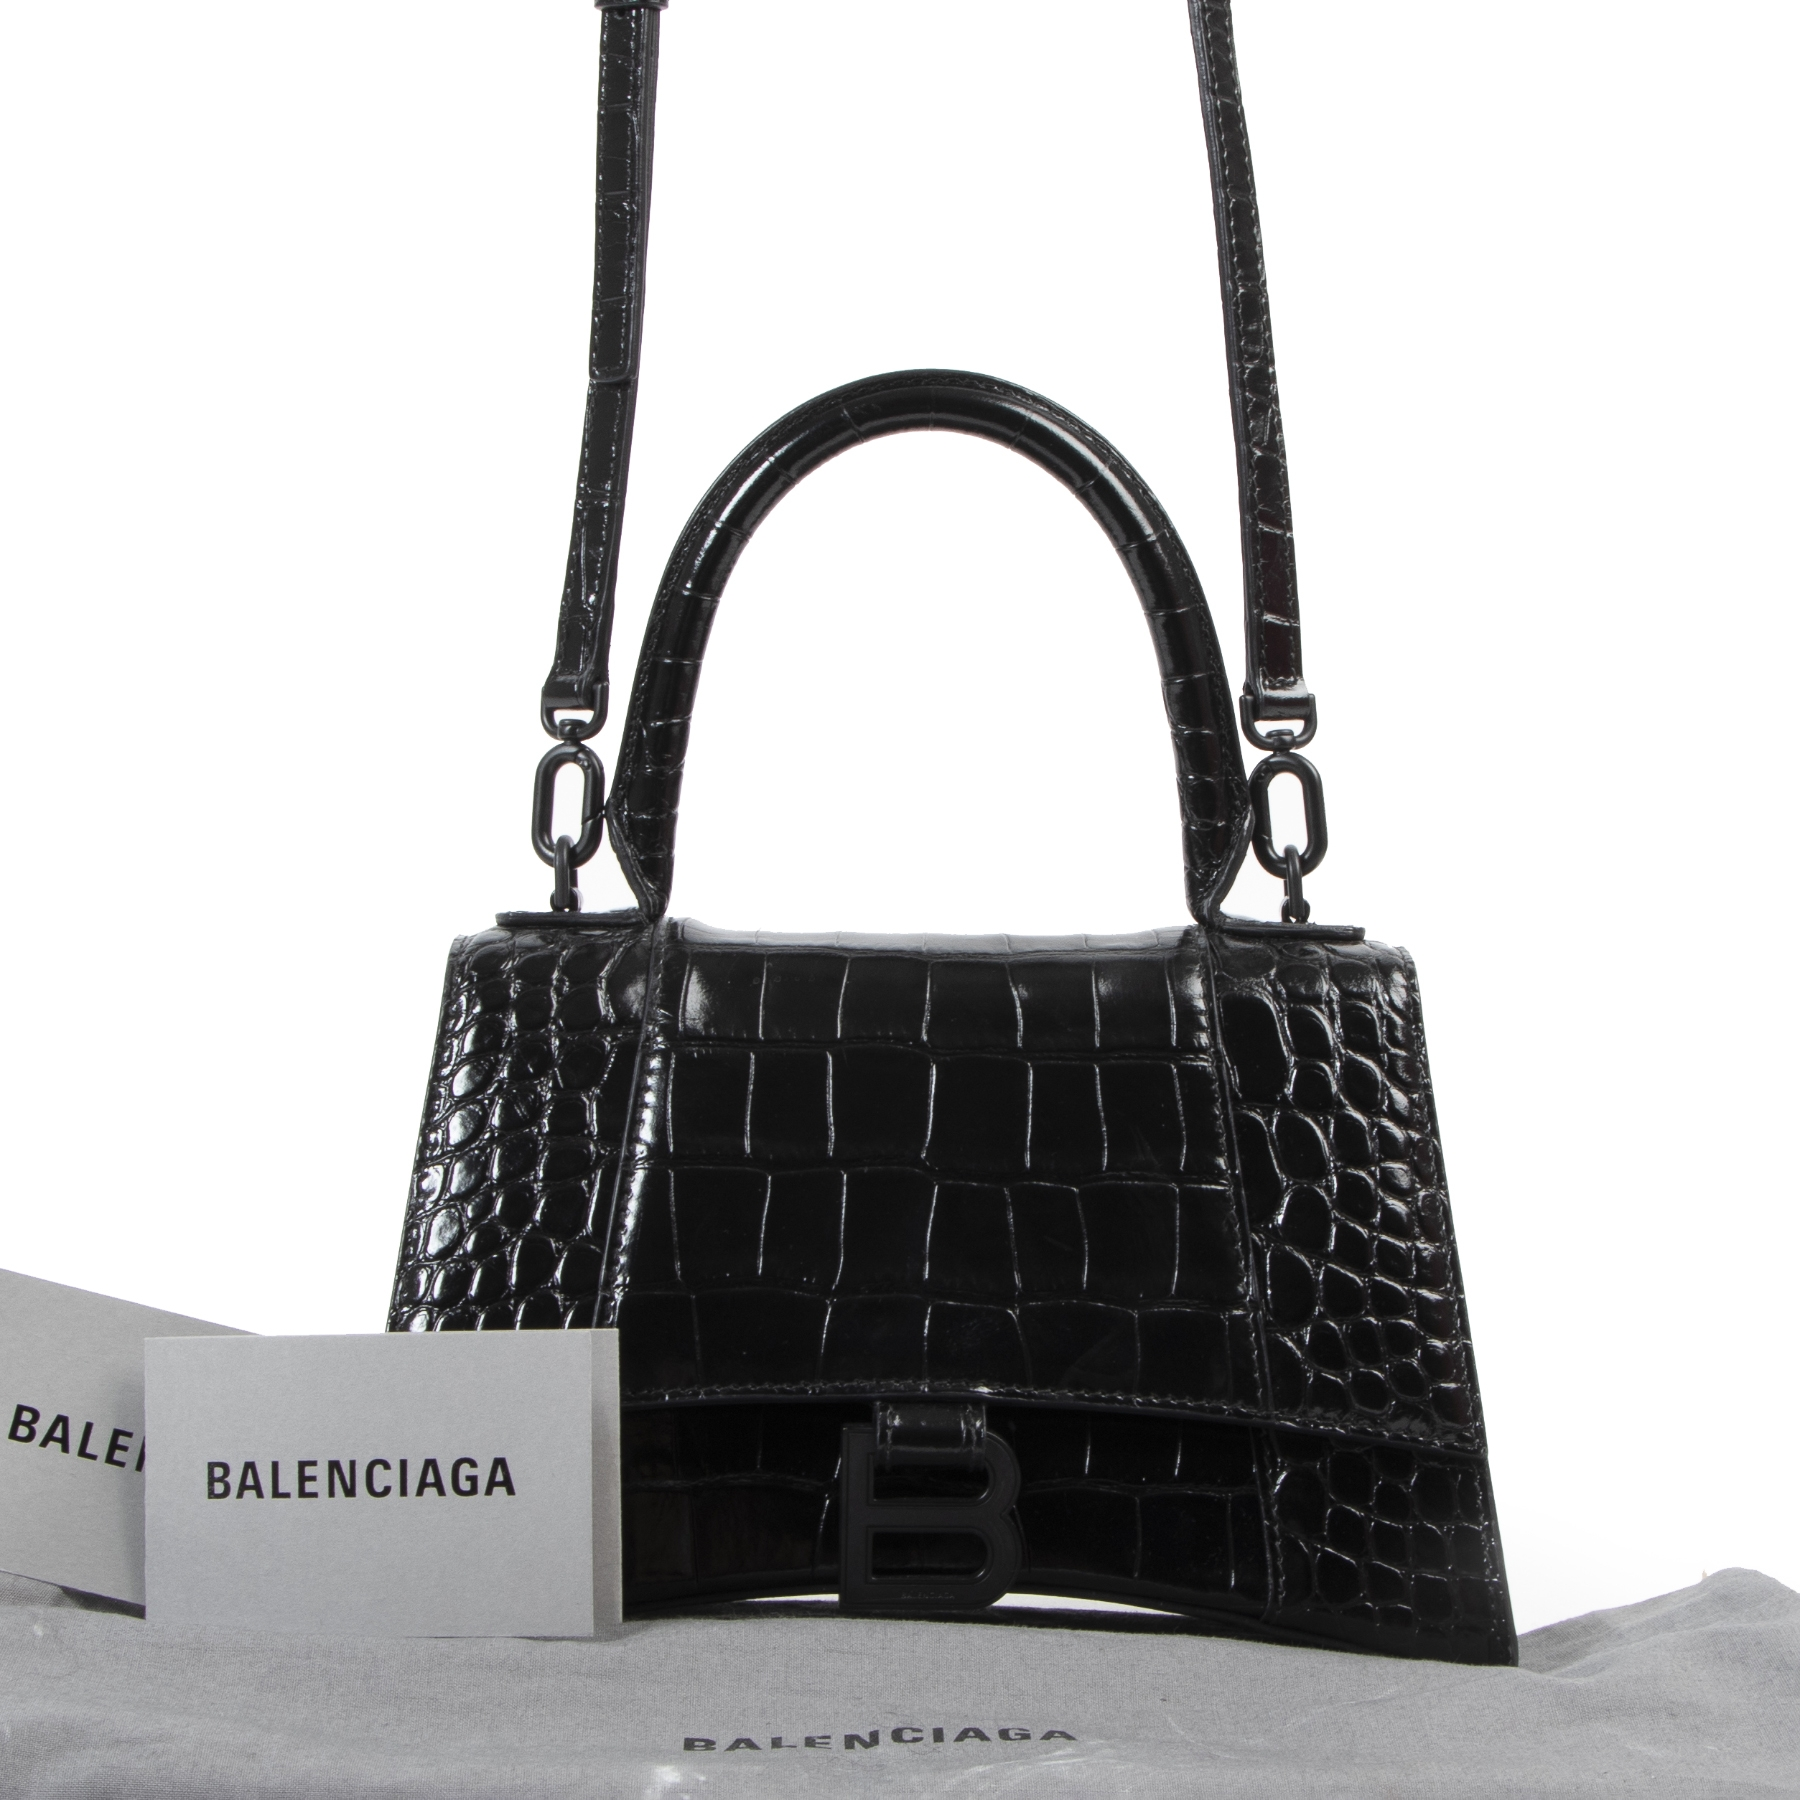 100% authentic Balenciaga Black Croco Hourglass Small Top Handle Bag for the best price